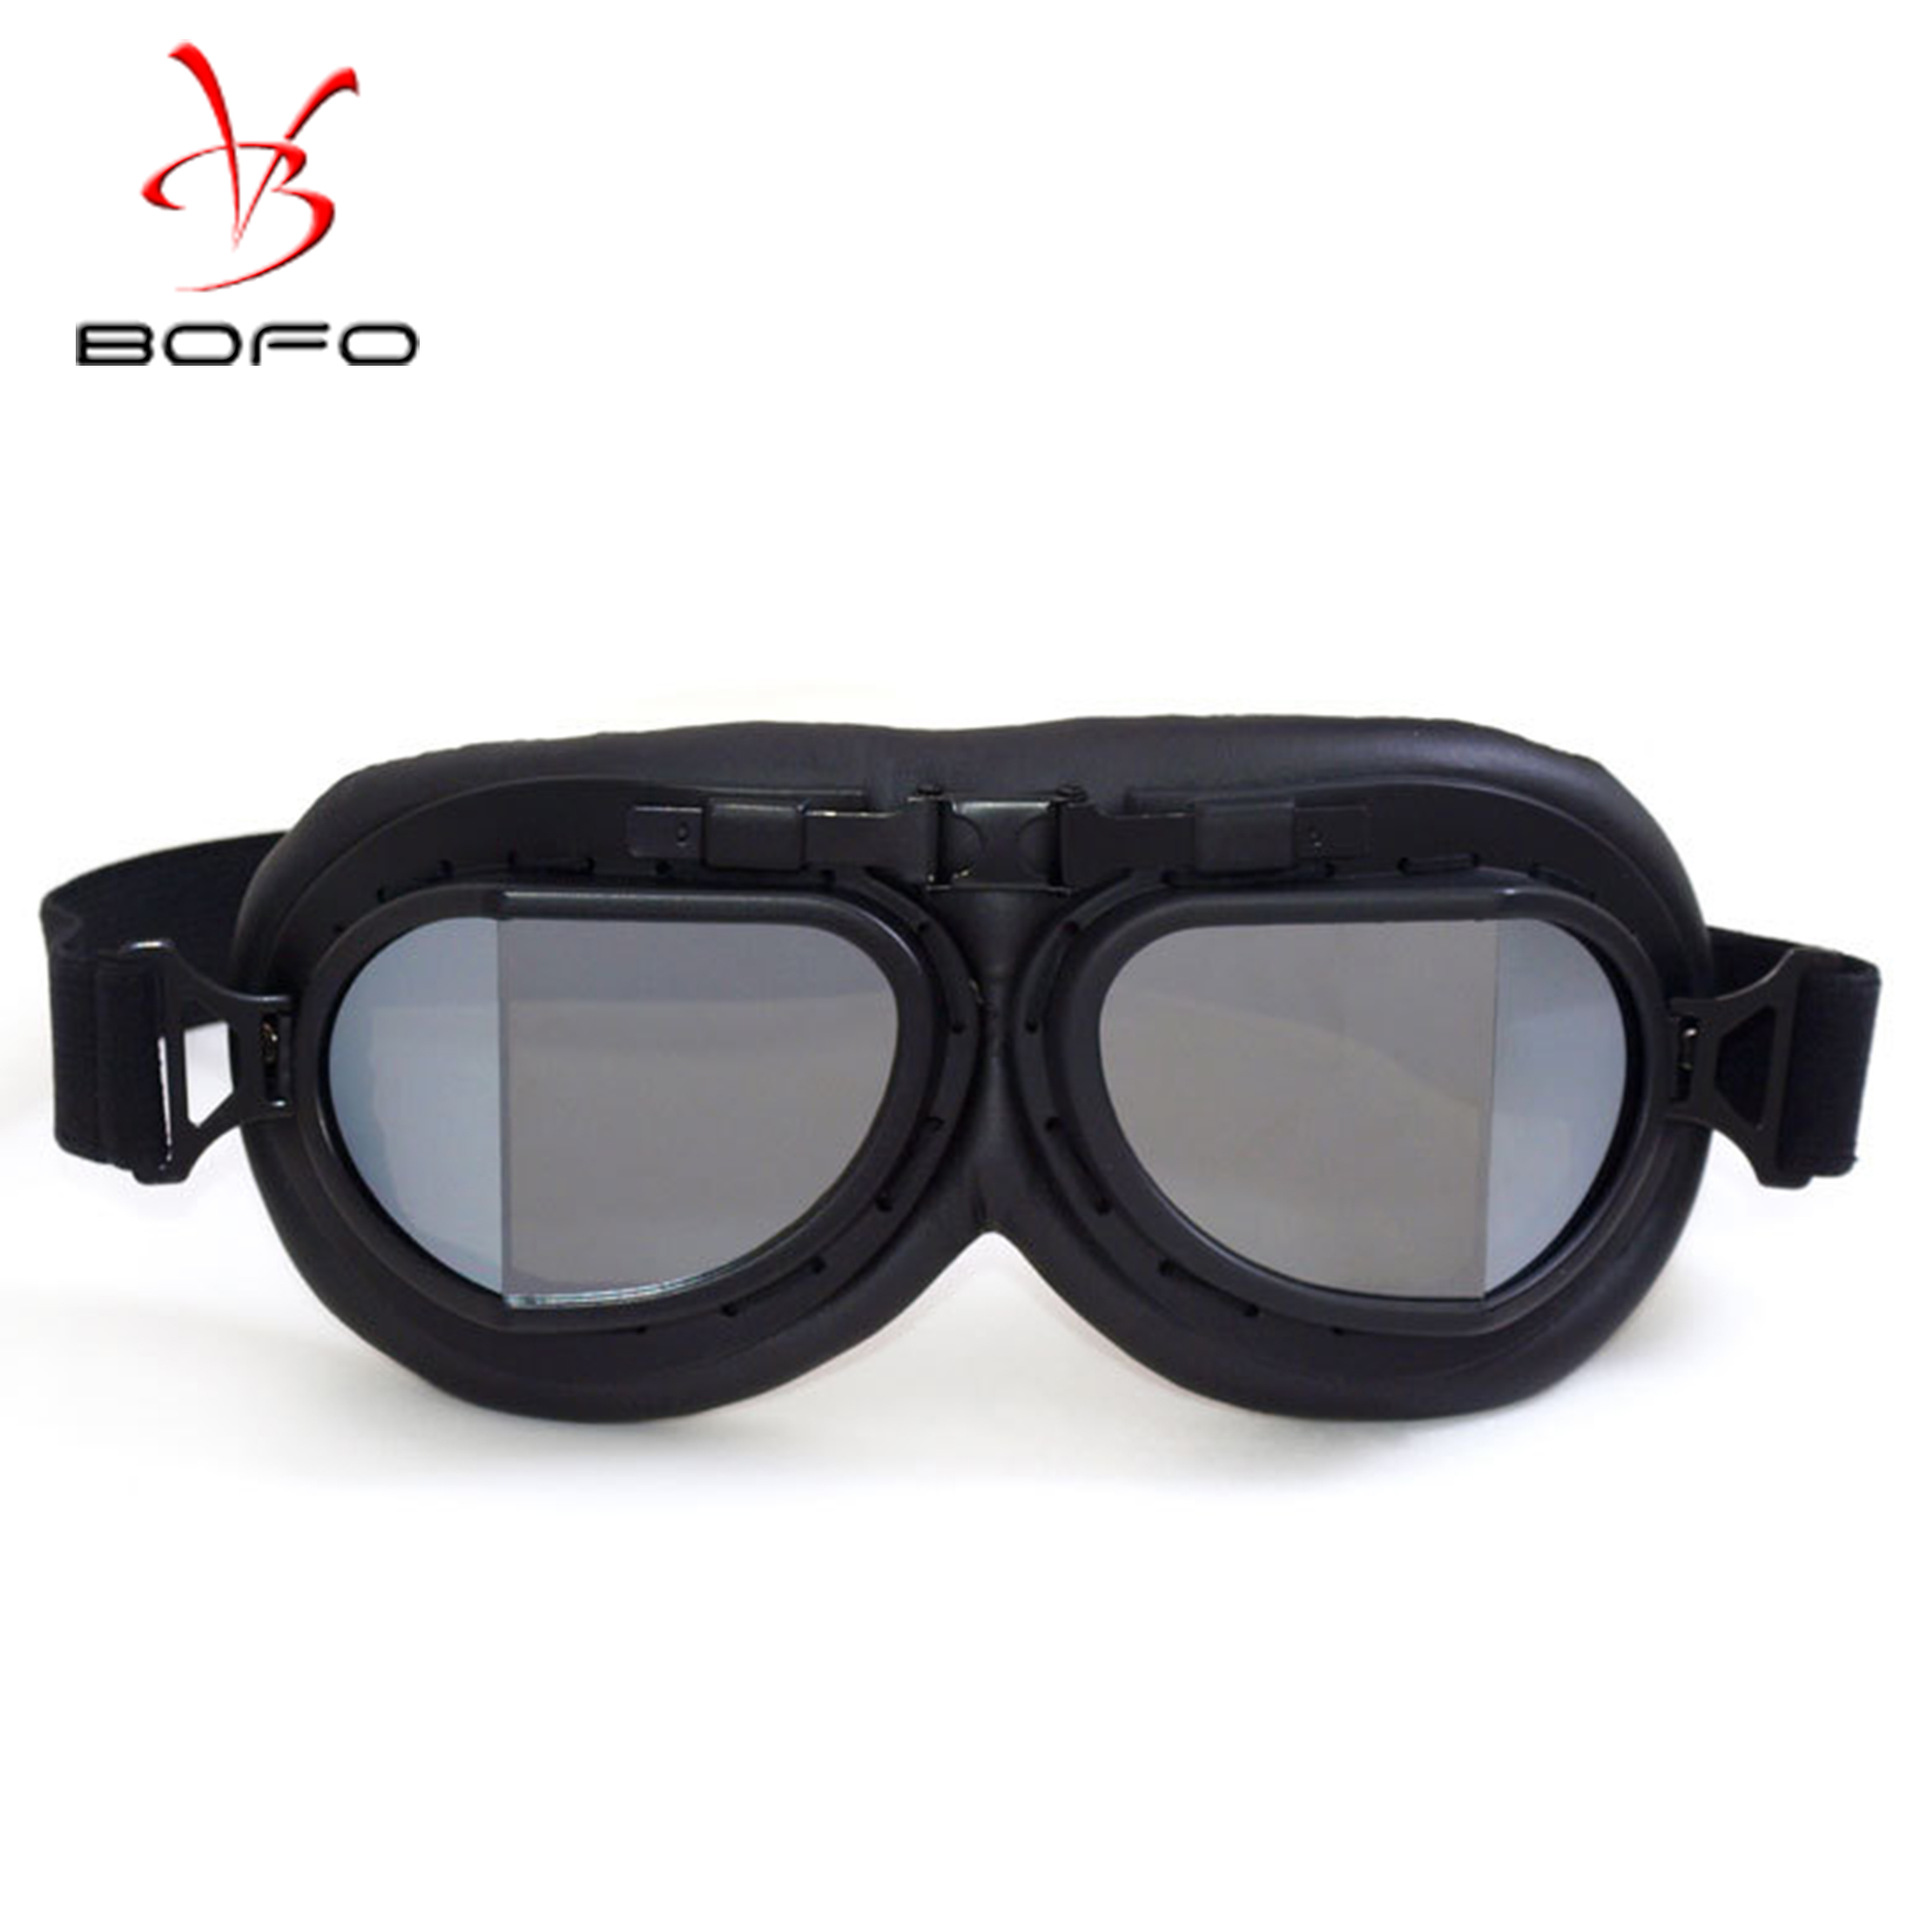 Manufacturers Harley Goggles Retro World War II Goggles Harley Goggles For Motorcycle Windproof Sand Labor Glasses All Black Box